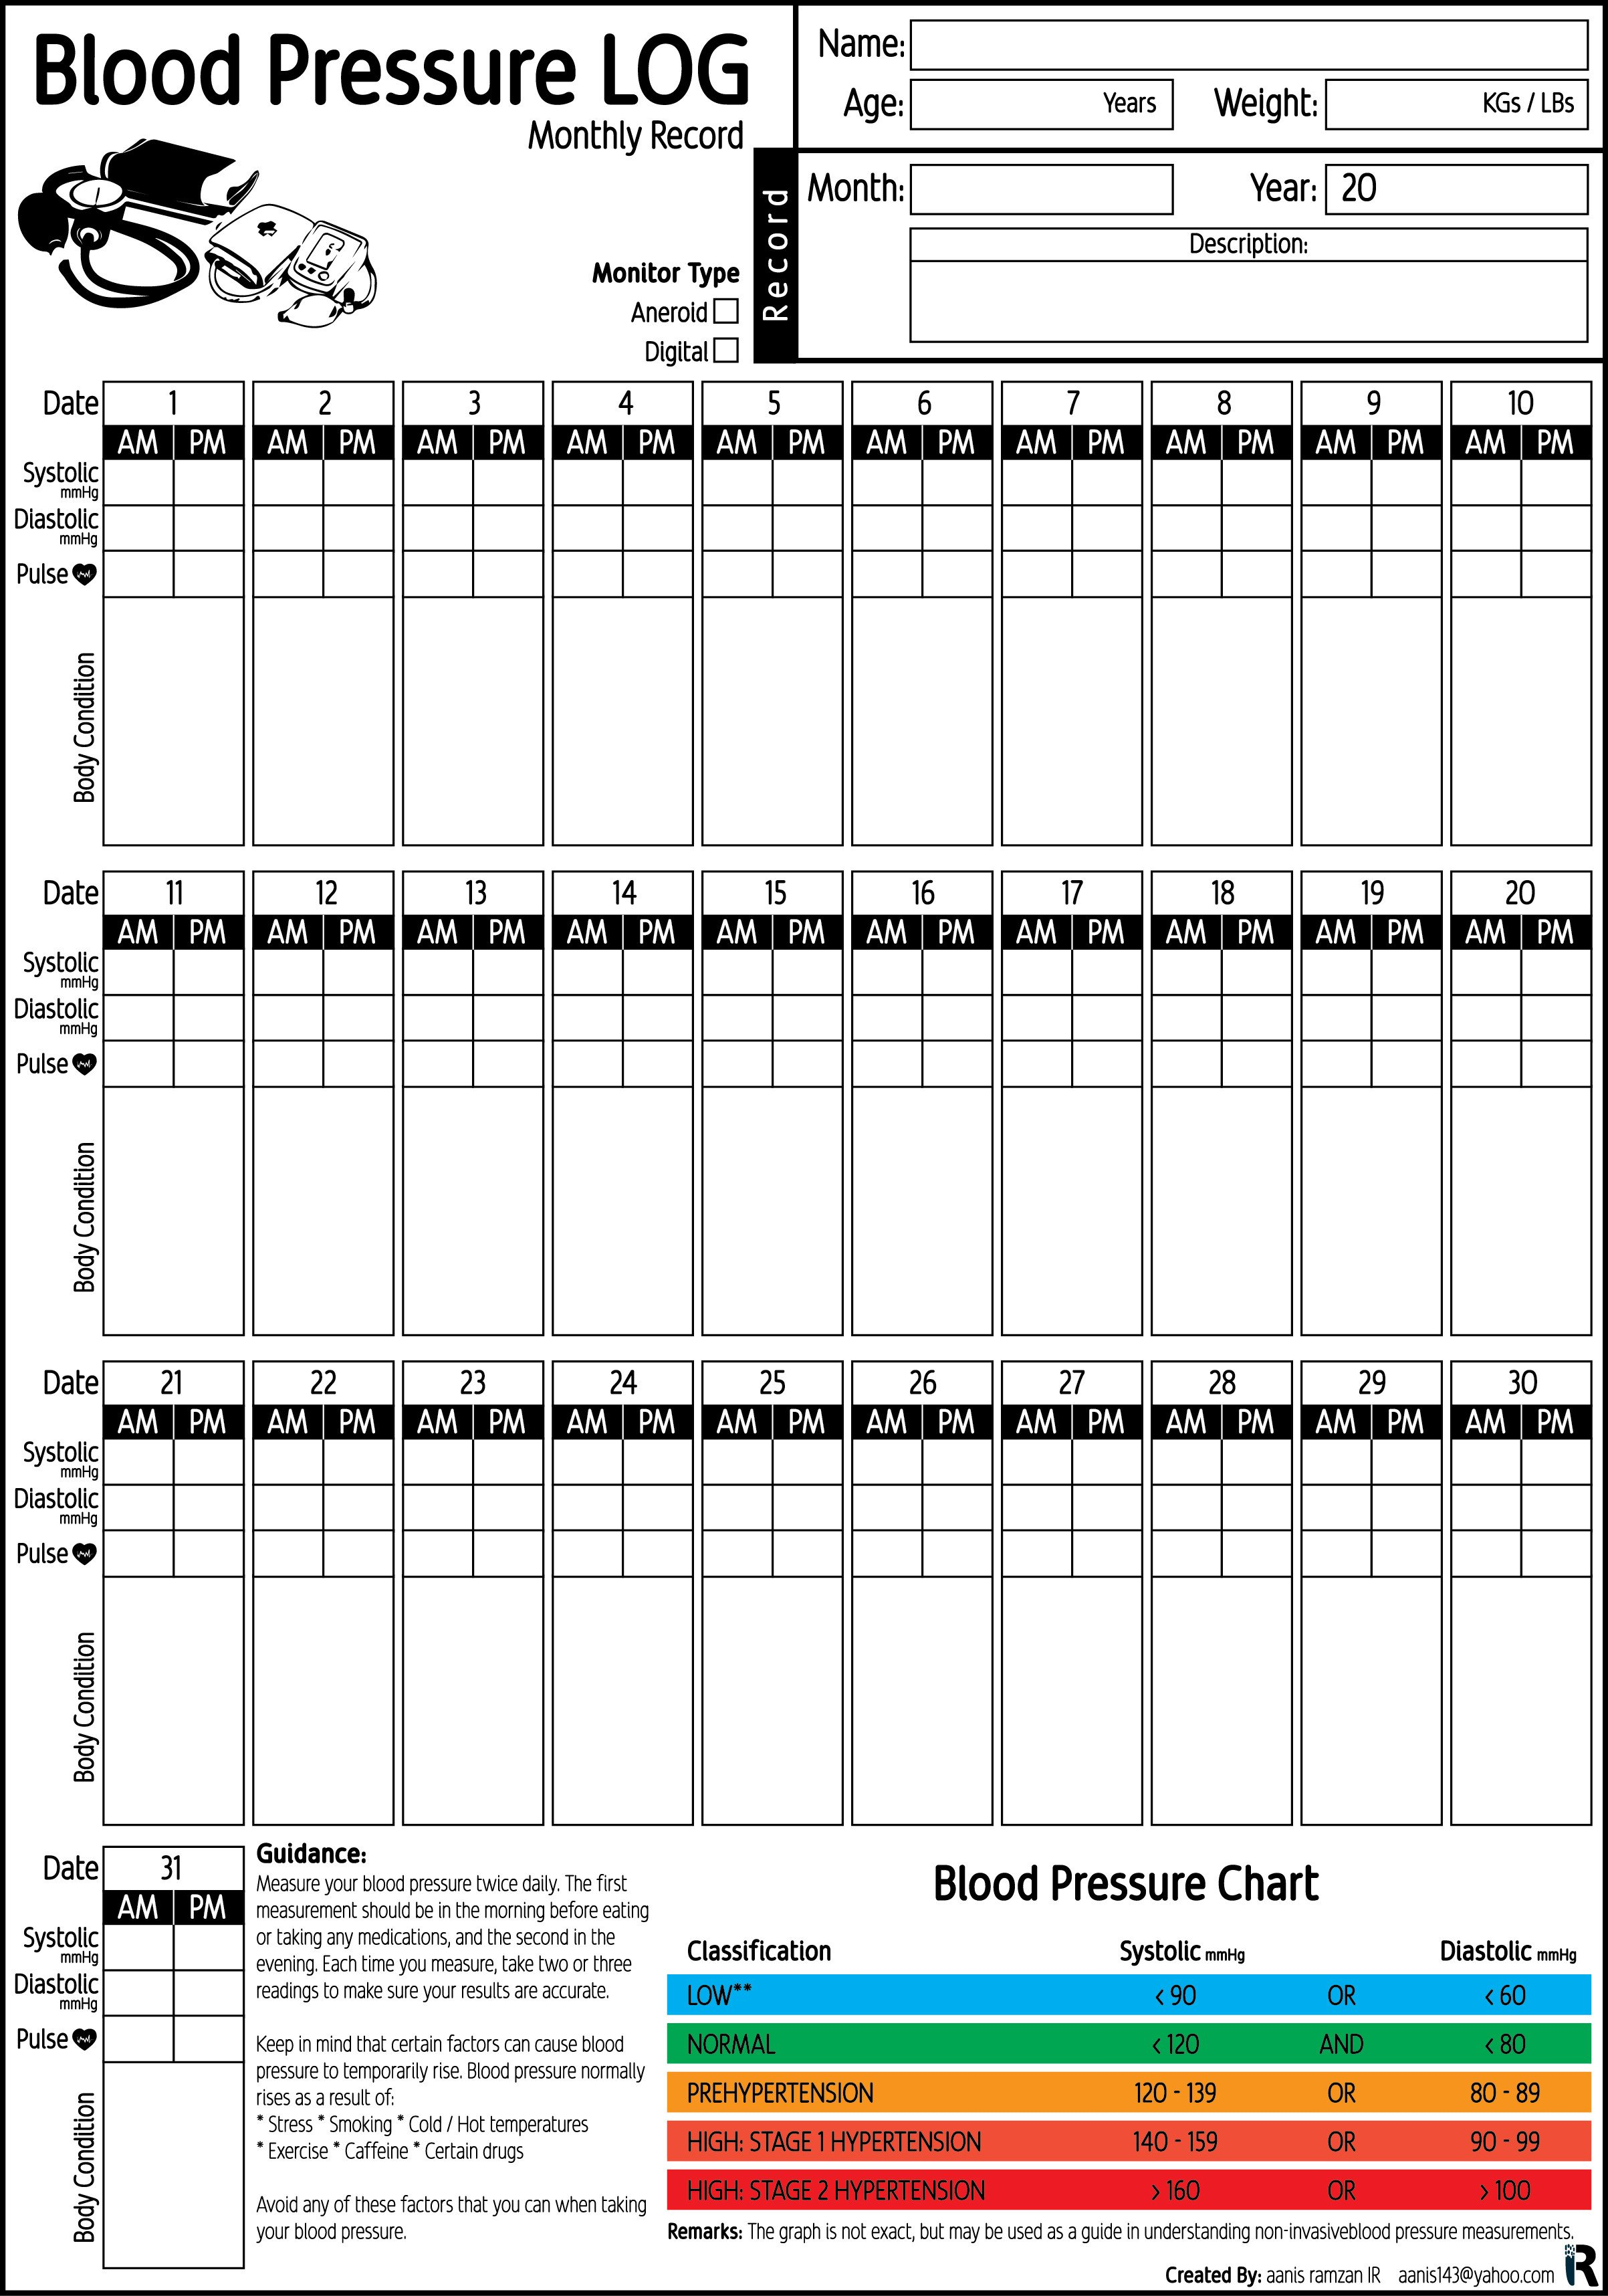 Blood Pressure Recording Chart Blood Pressure Log Monthly Record Pdf Printable by Aanis